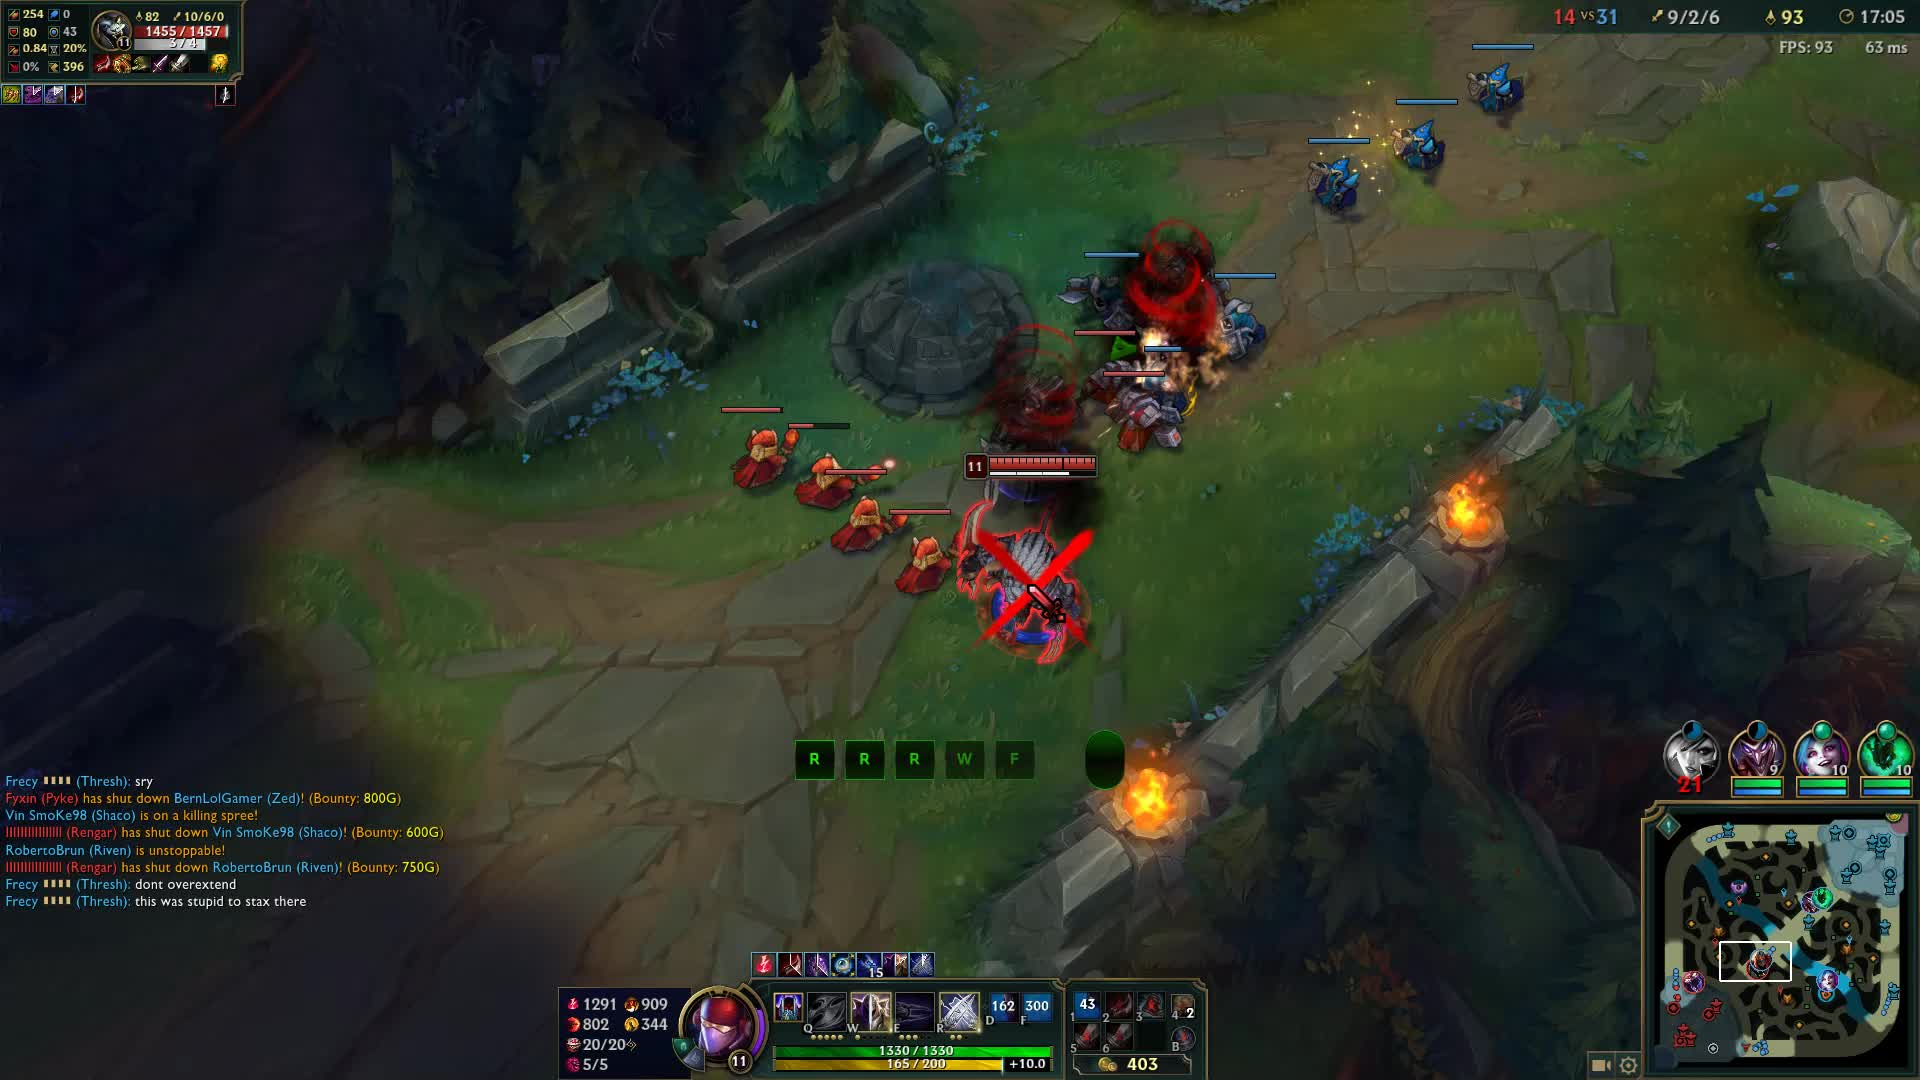 Assist, Gaming, Kill, LeagueOfLegends, Overwolf, Win, Zed, Check out my video! LeagueOfLegends | Captured by Overwolf GIFs